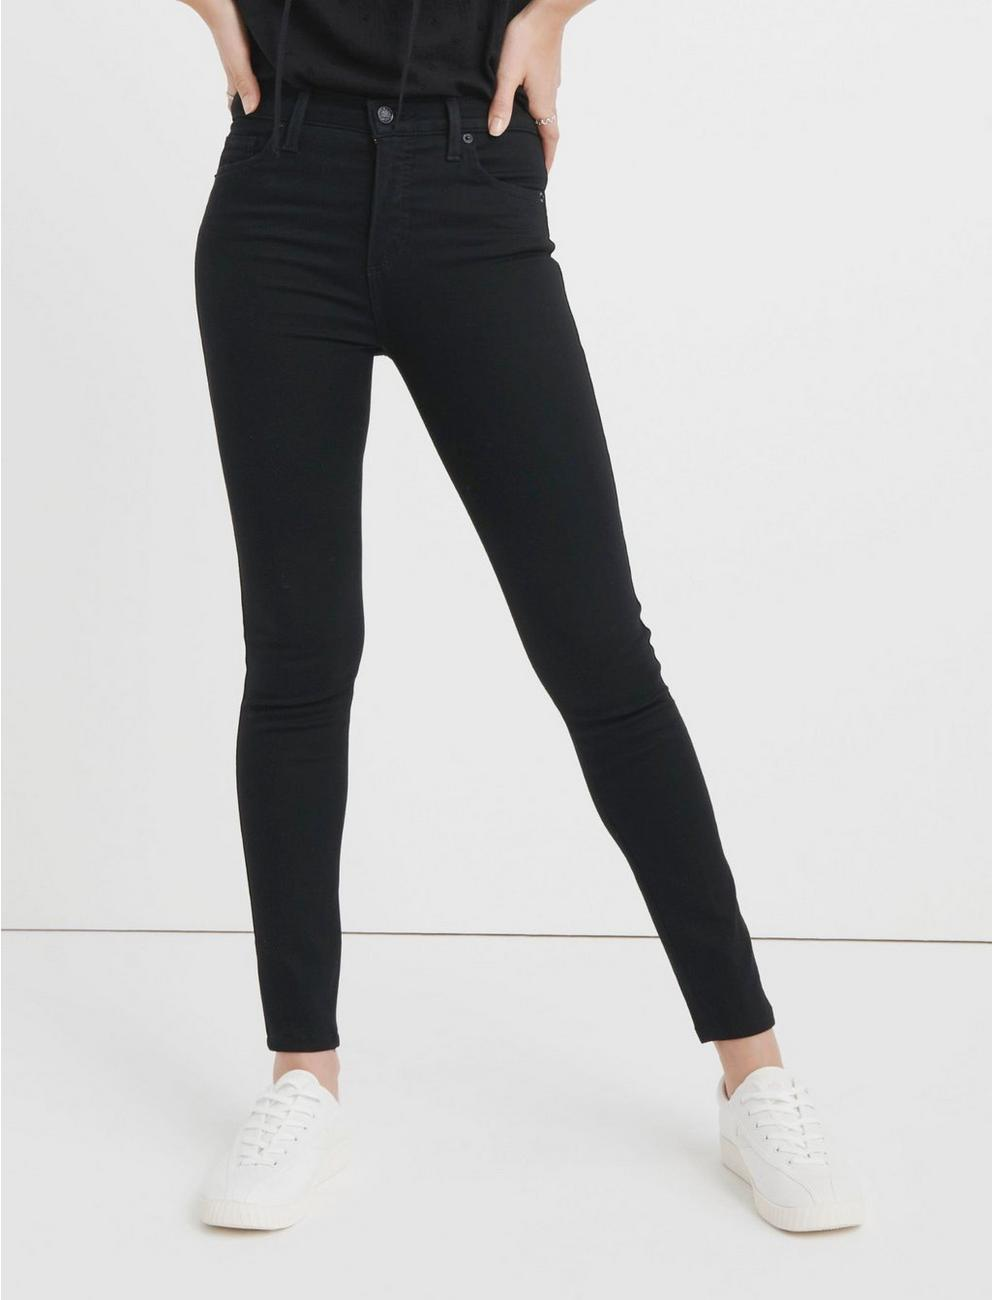 HIGH RISE BRIDGETTE SKINNY JEAN, WILLIAMETTE